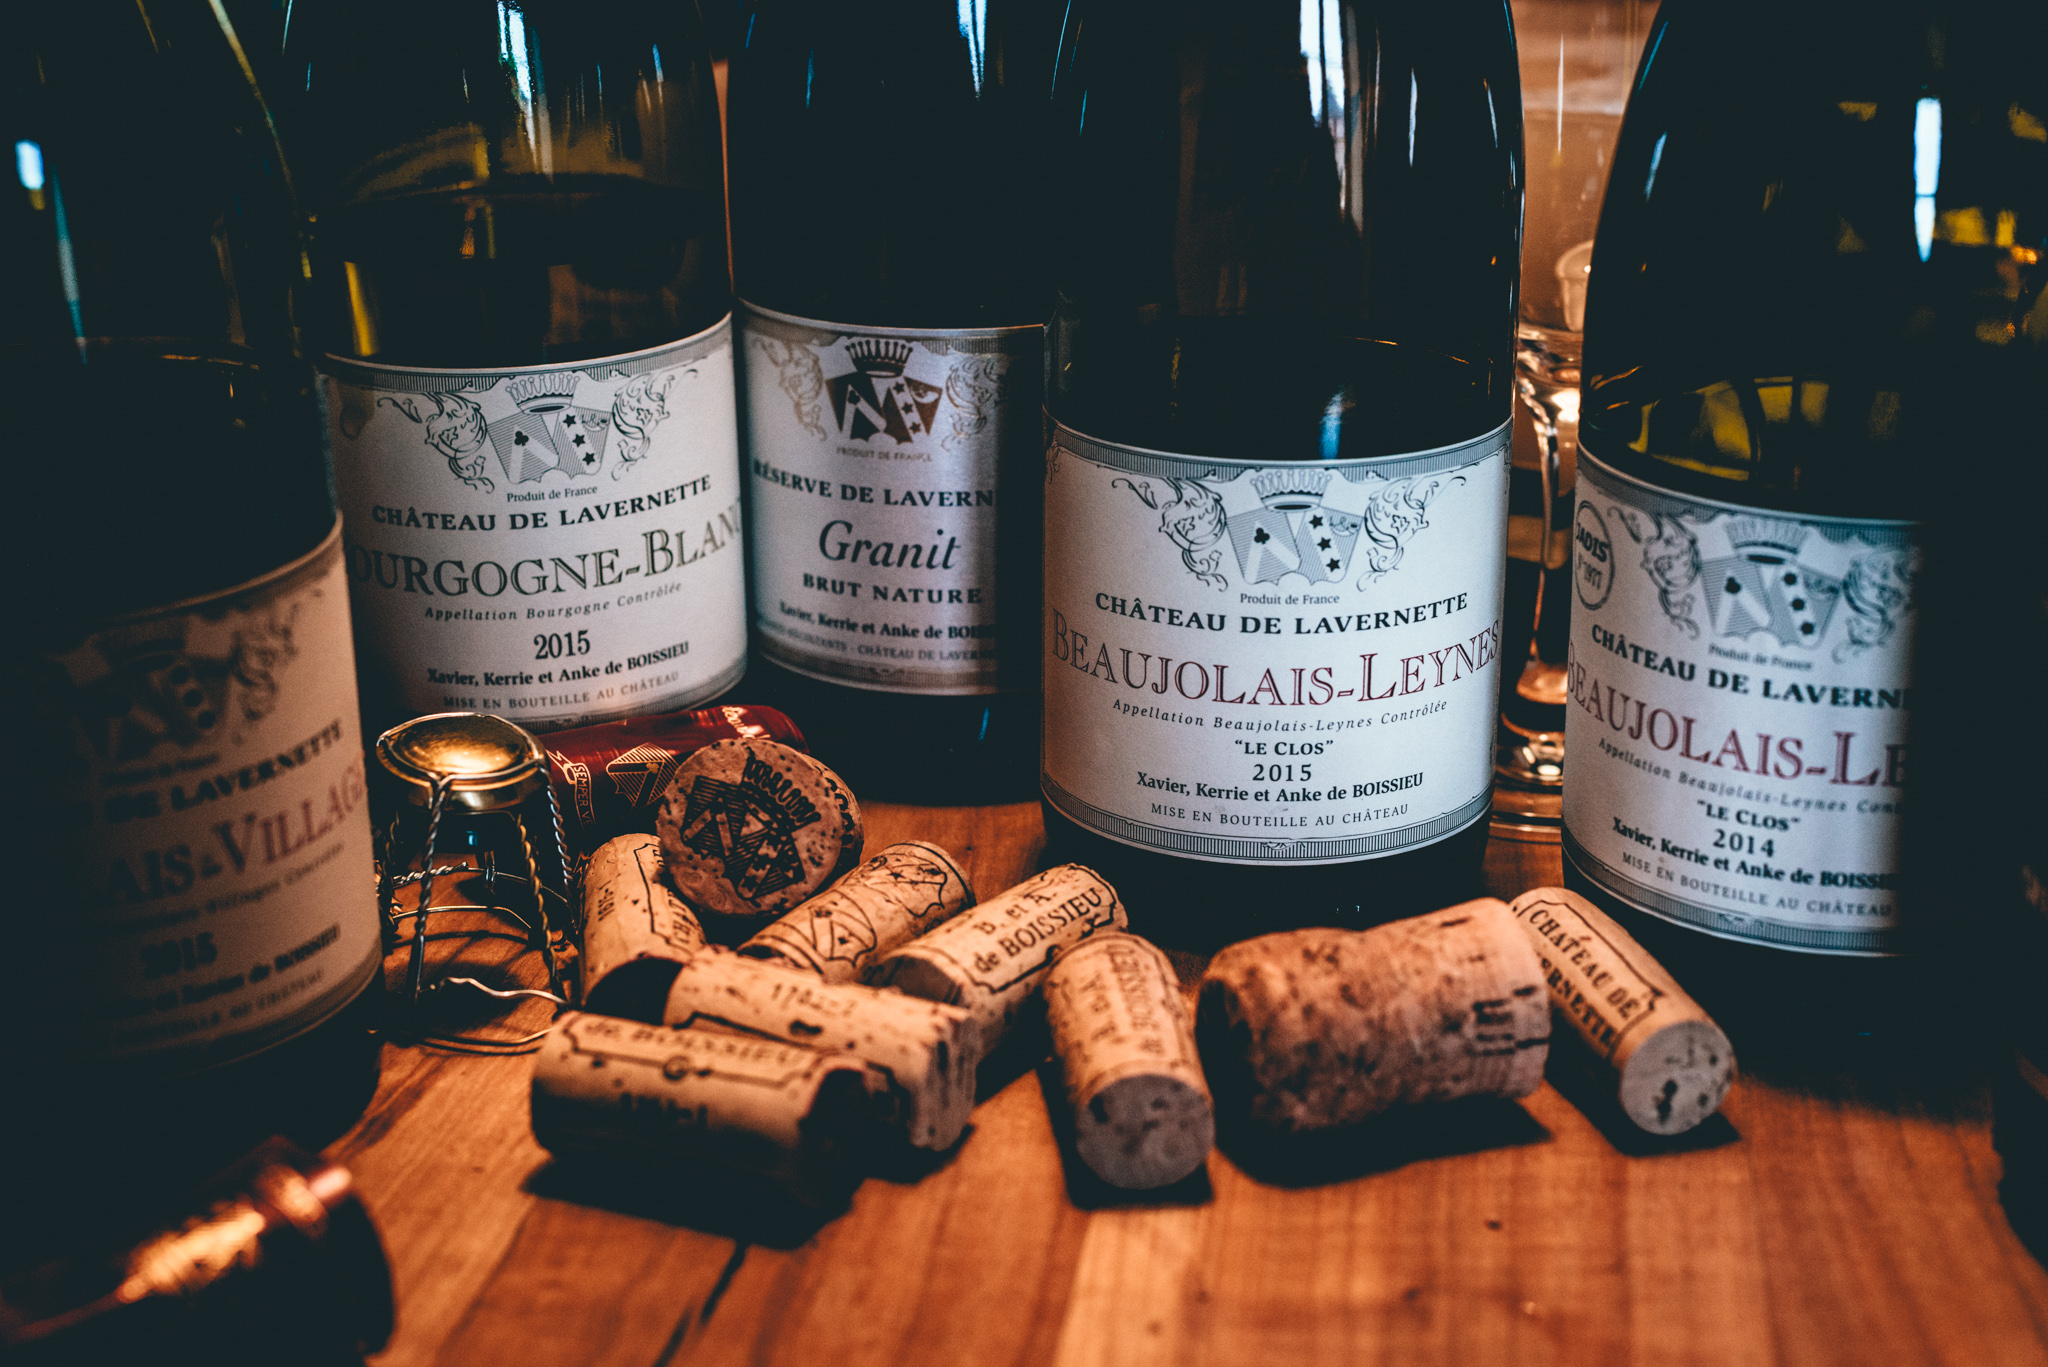 France : Beaujolais : Tasting at Chateau de Lavernette in Leynes